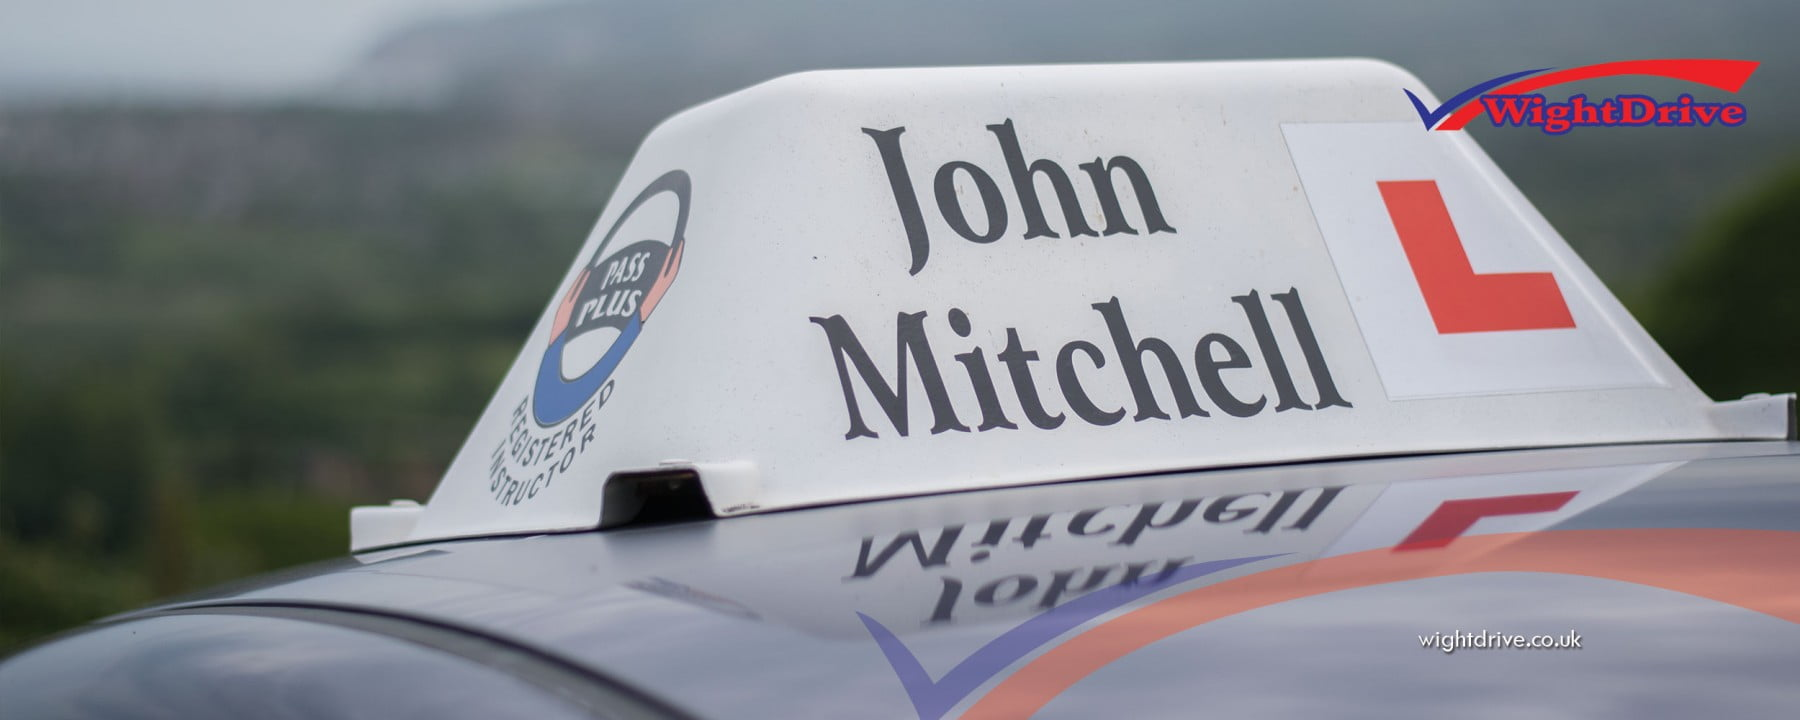 wight-drive-isle-of-wight-driving-instructors-john-mitchell